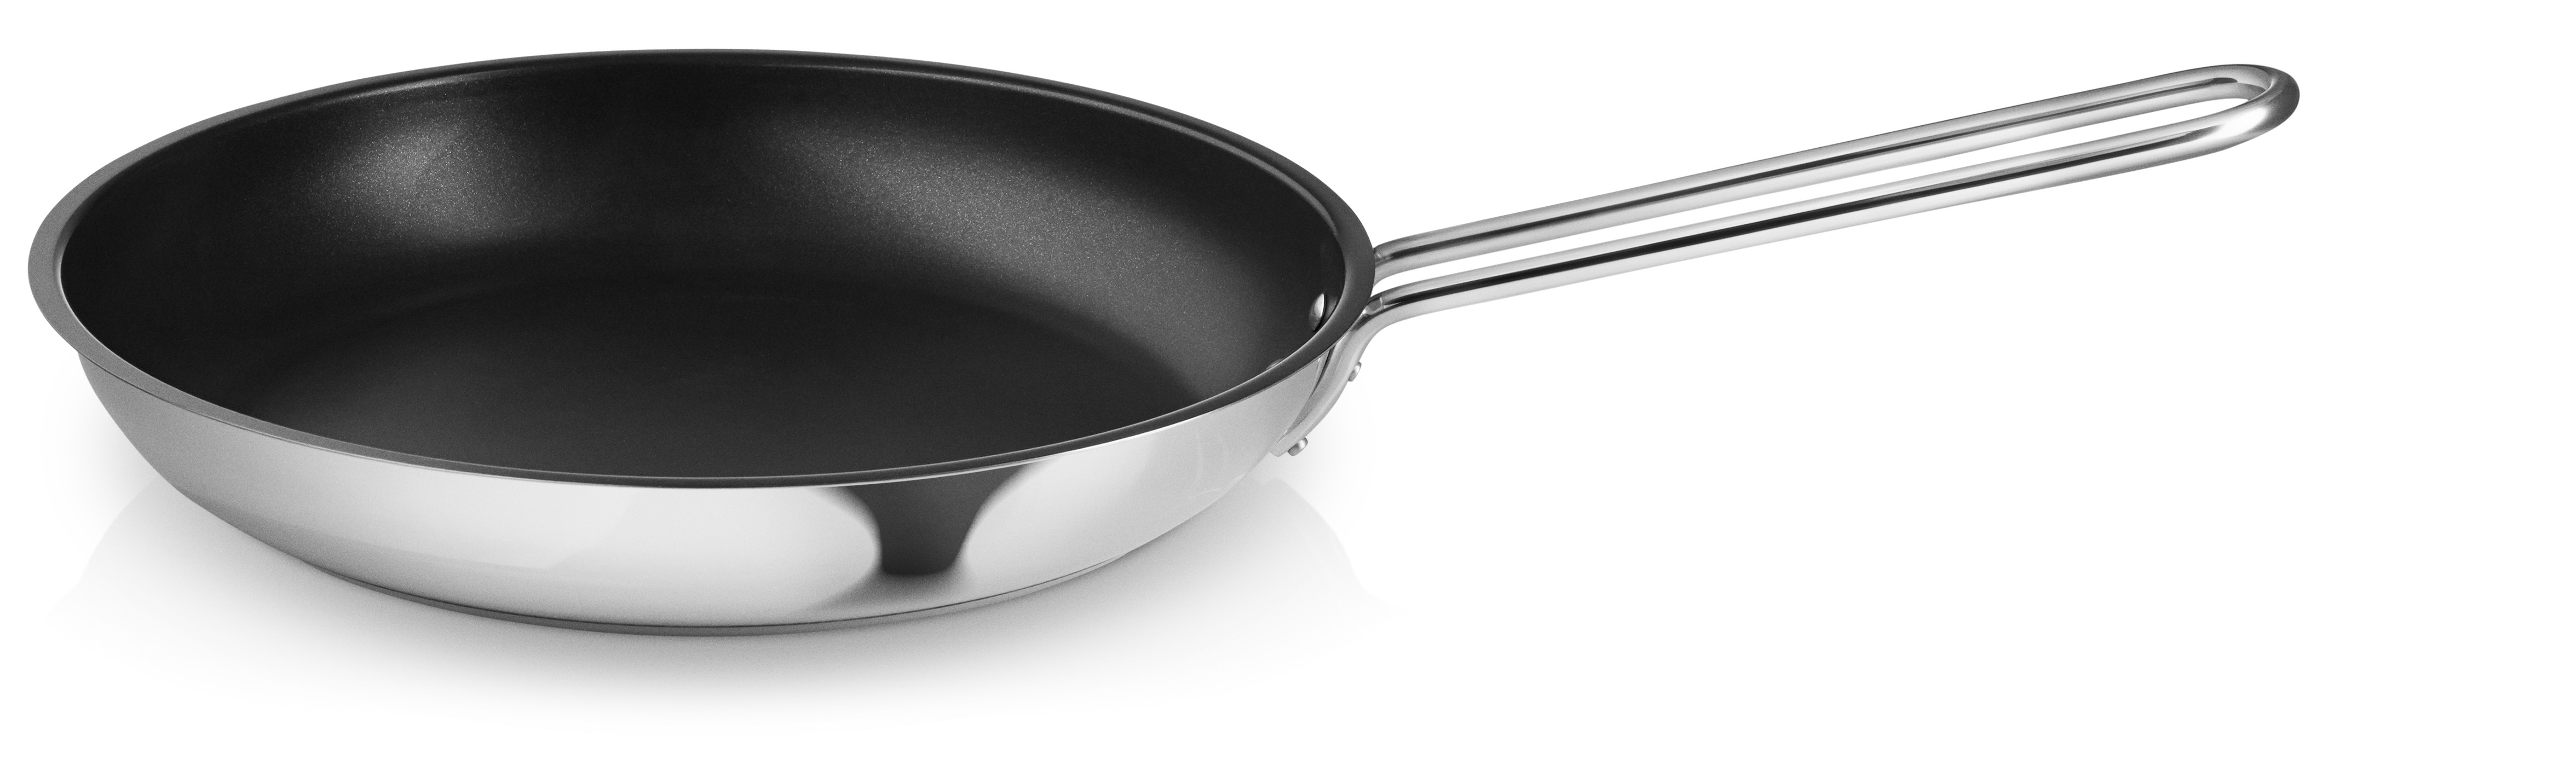 Frying pan Ø26cm Stainless steel